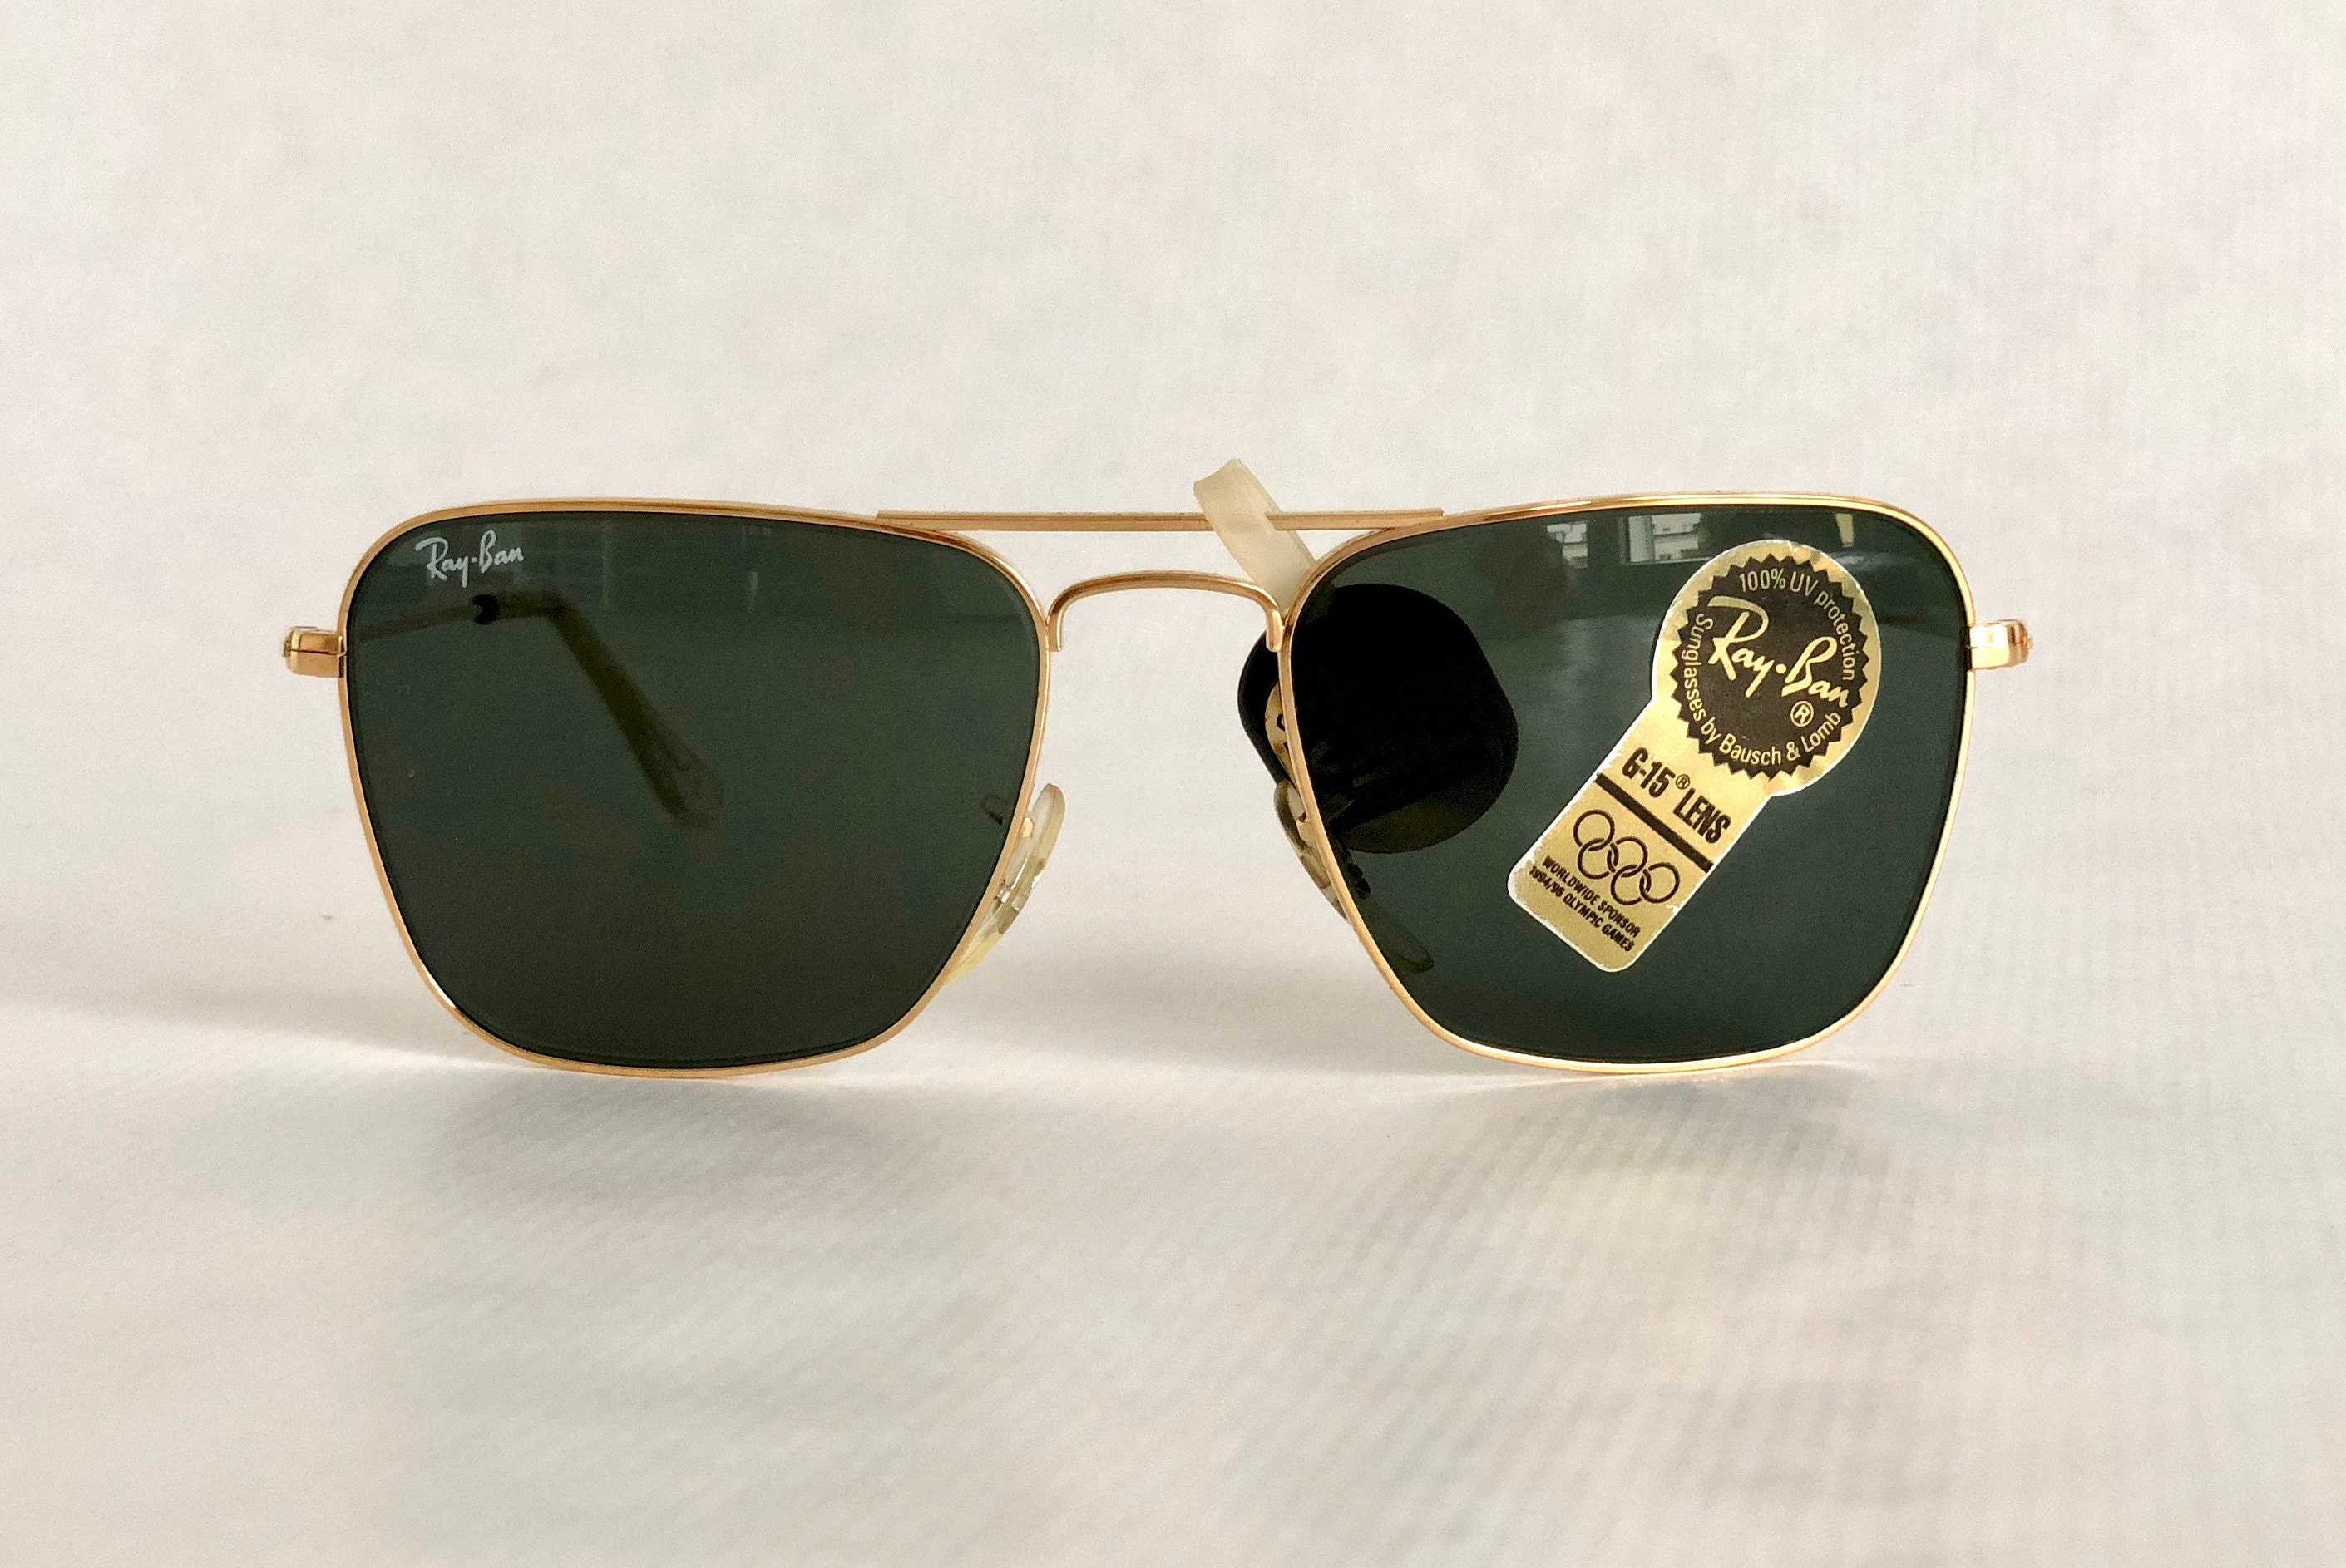 50ce0252f96 Ray-Ban by Bausch   Lomb Caravan Vintage Sunglasses including ...